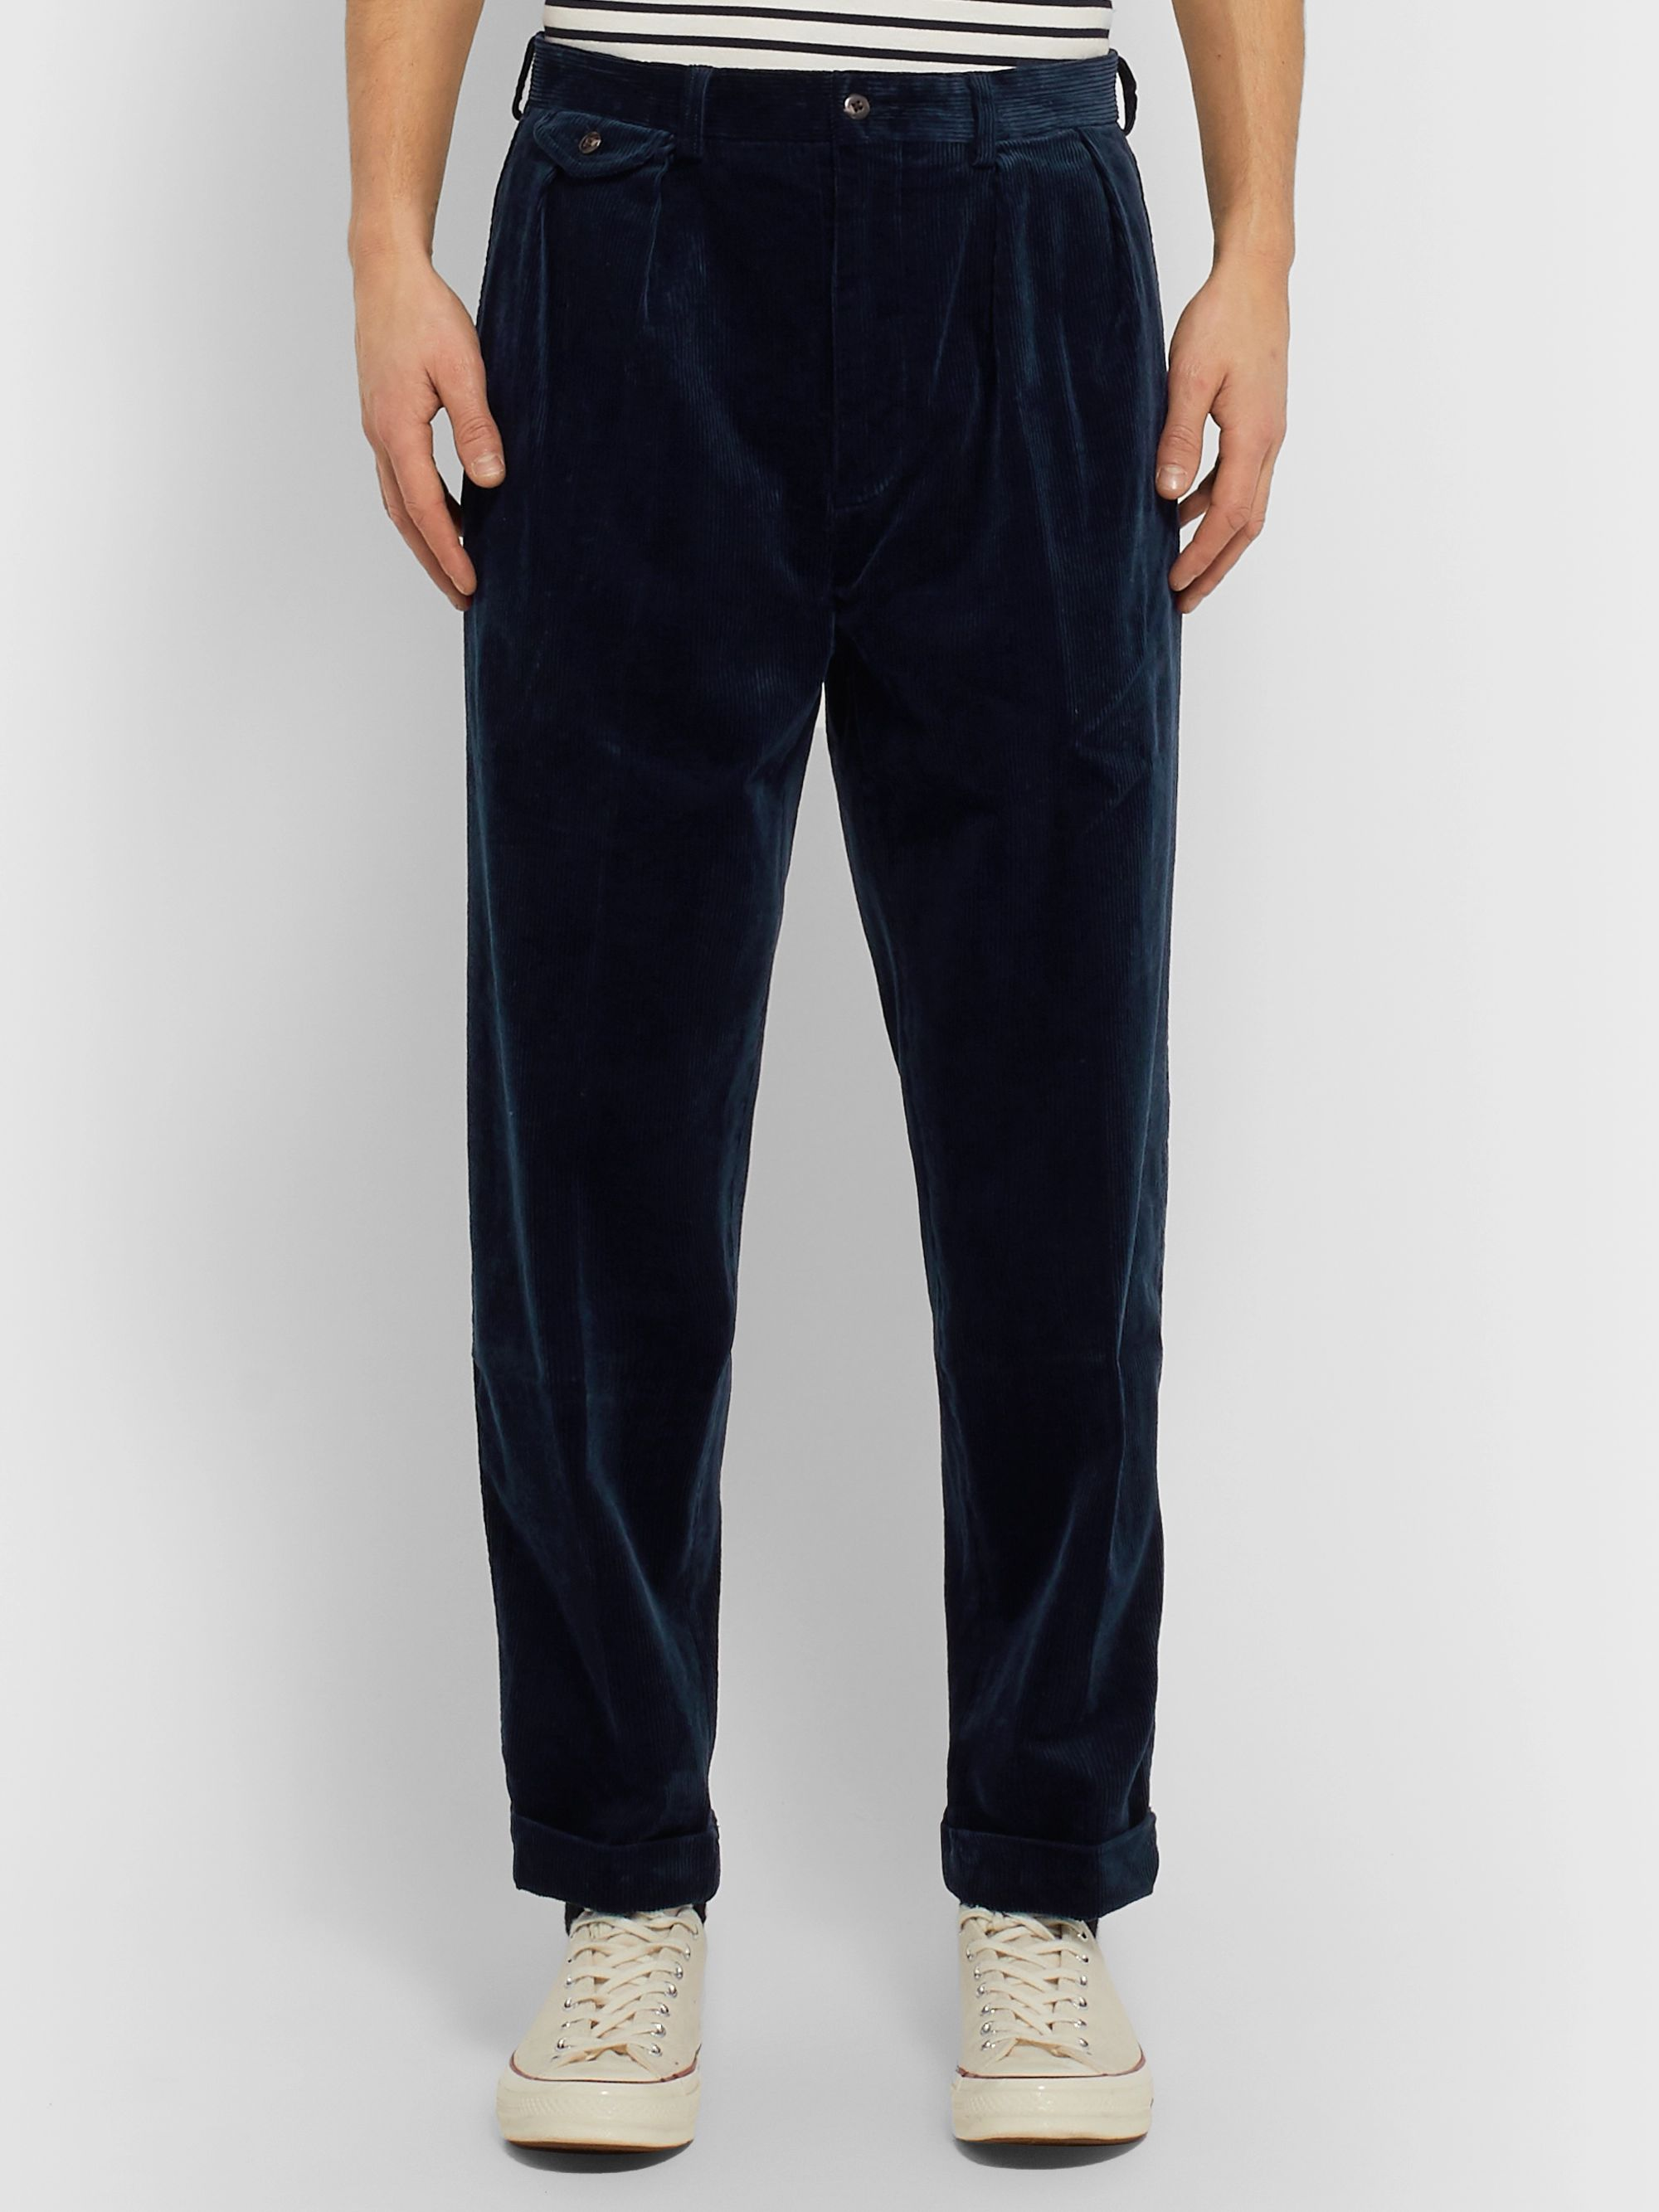 Polo Ralph Lauren Navy Tapered Pleated Cotton-Blend Corduroy Trousers